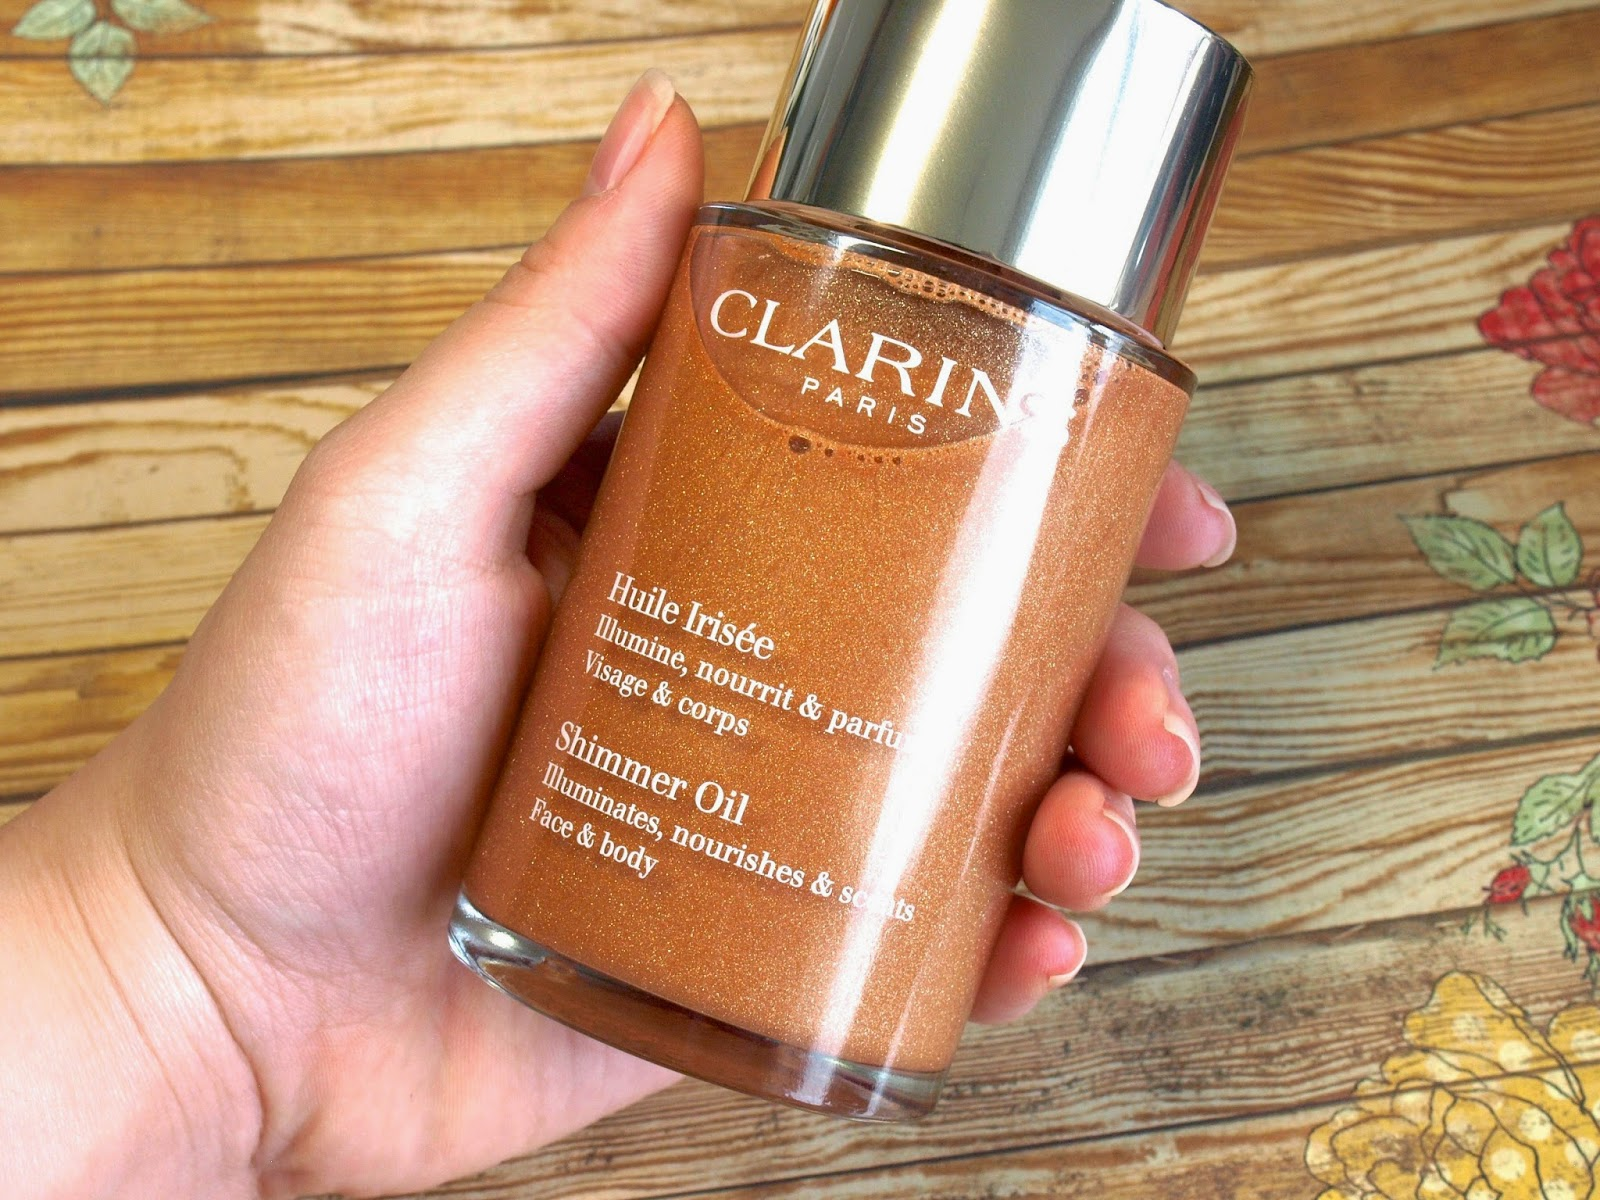 Clarins Shimmer Oil